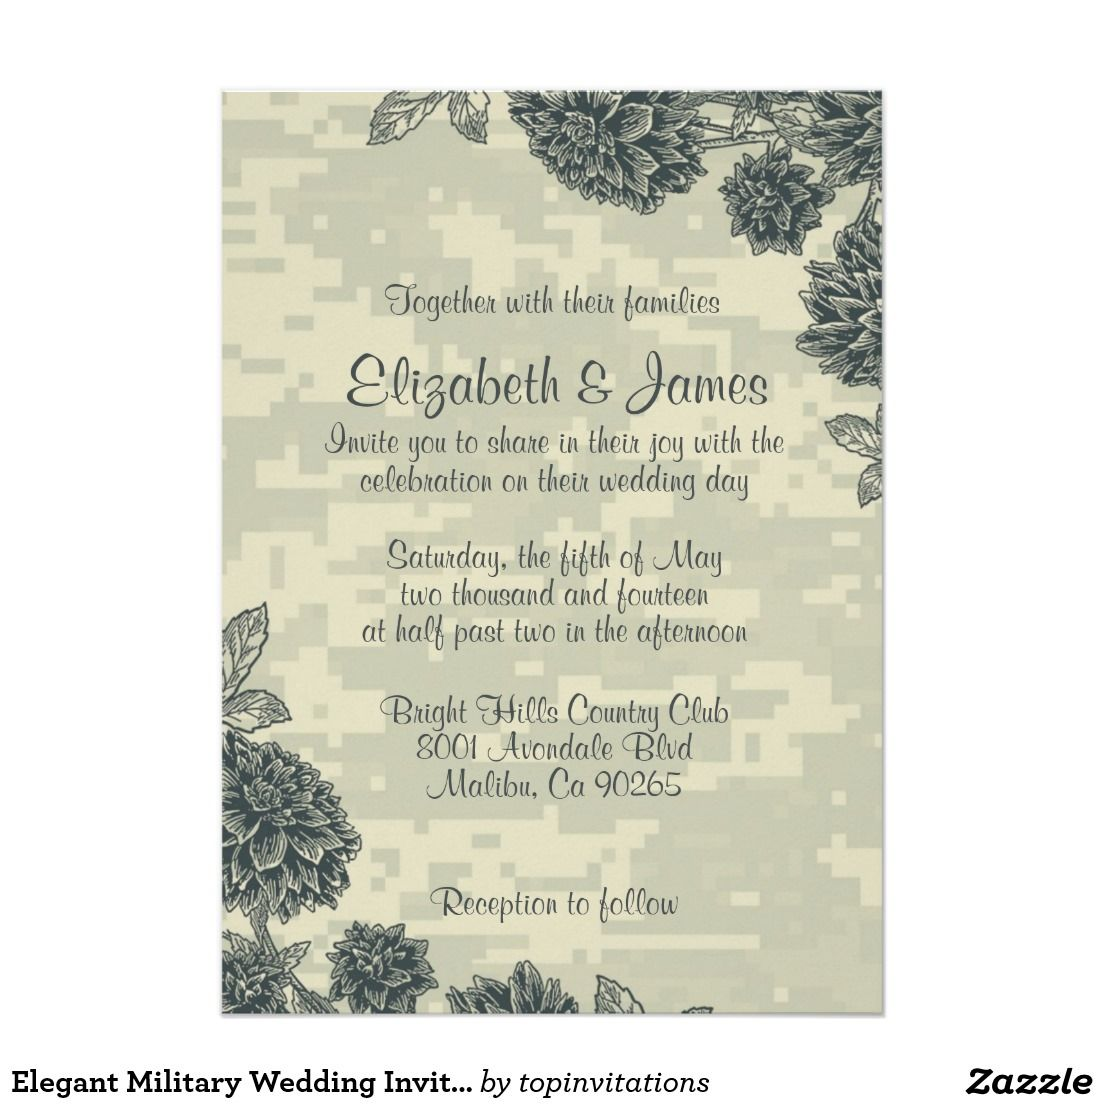 Elegant Military Wedding Invitations | Creative Wedding Invitations ...